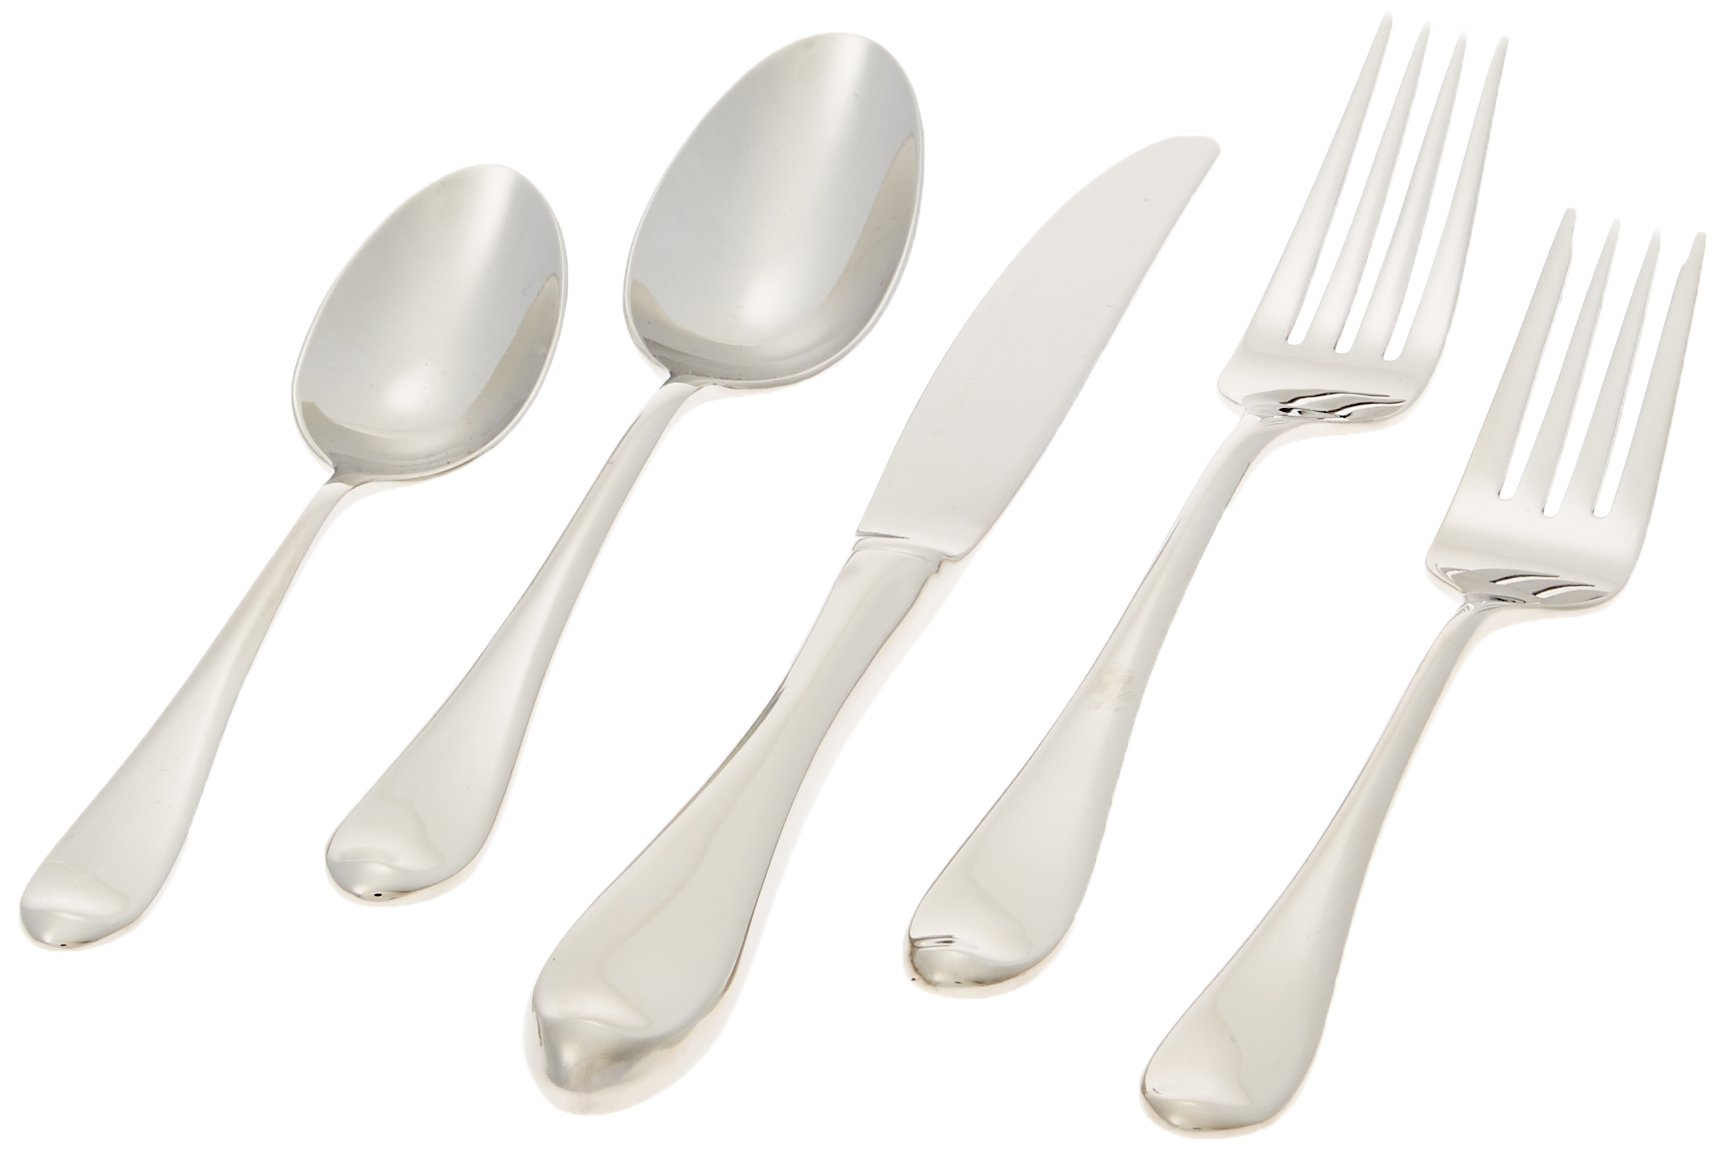 Gorham Studio 5-Piece Stainless Flatware Set - Cleanly designed place setting for everyday or special occasions Includes salad fork, dinner fork, dinner knife, dinner spoon, and teaspoon Made of high-quality 18/10 stainless steel - kitchen-tabletop, kitchen-dining-room, flatware - 61aglFJfIdL -